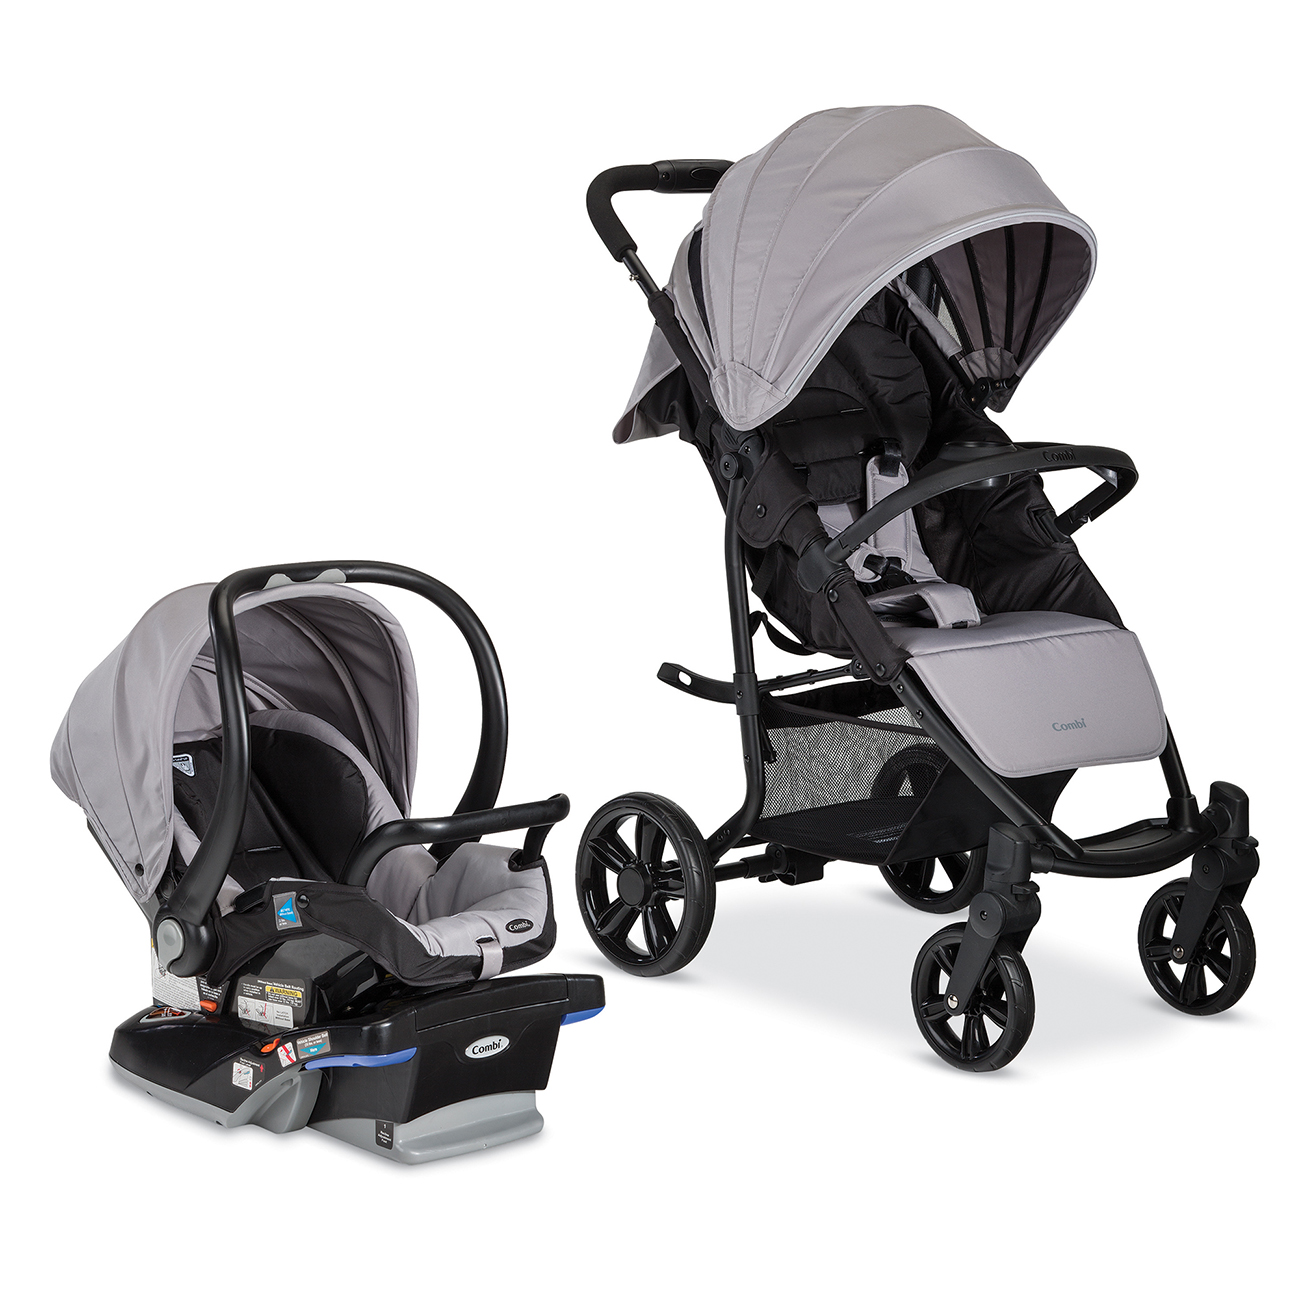 Combi Shuttle Travel System, Choose your color by Combi